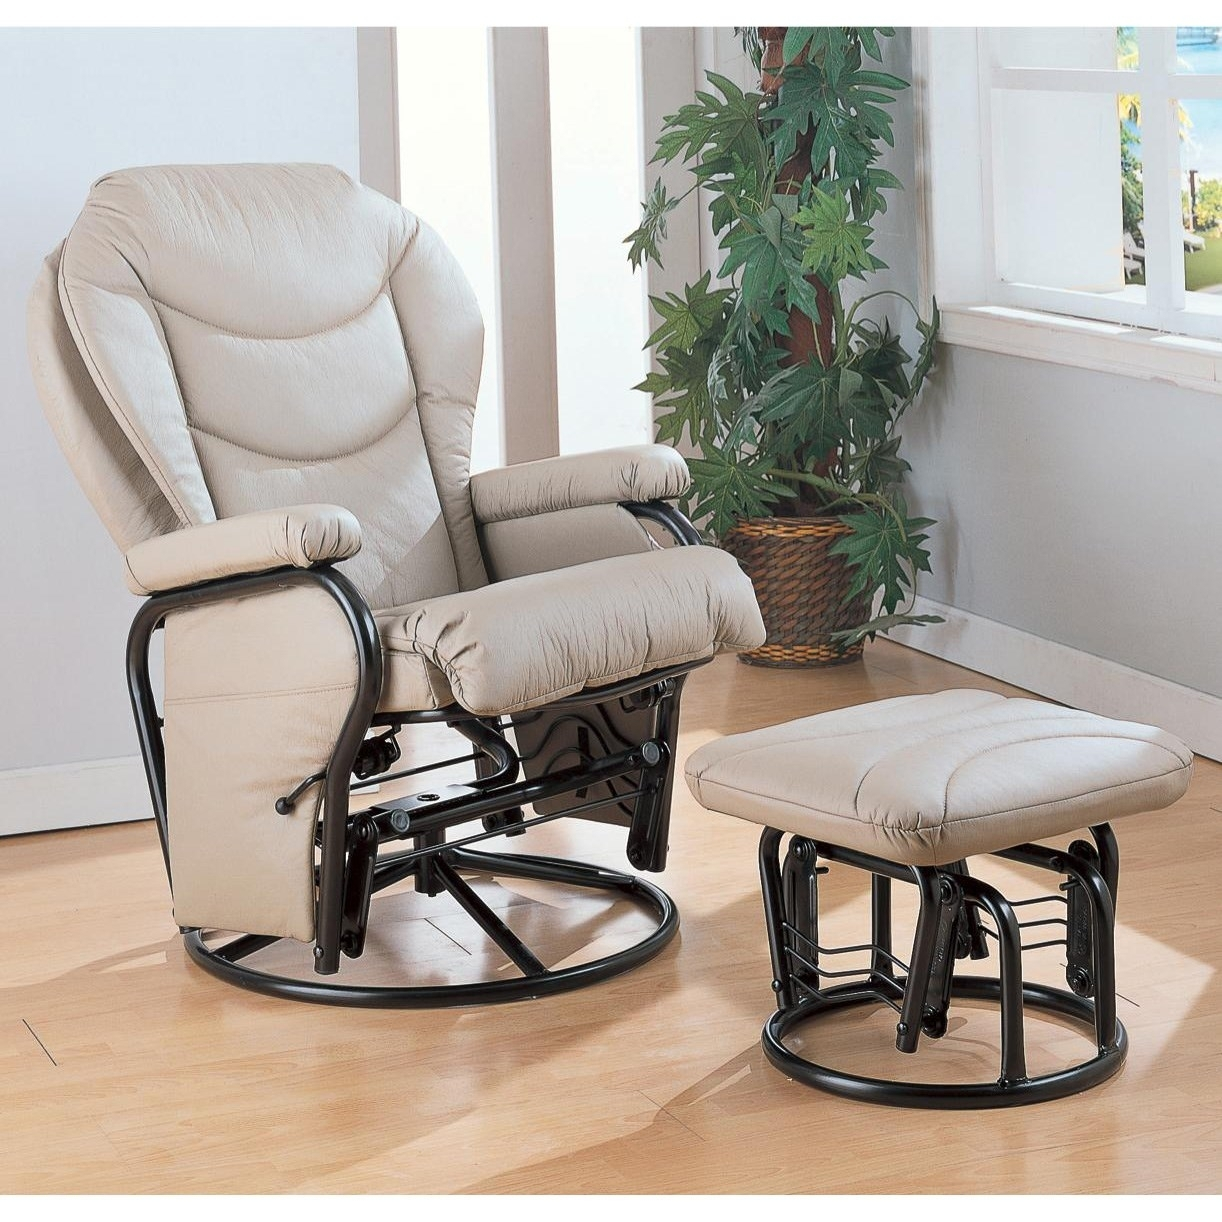 Coaster Furniture Ottomans Glider Rocker With Round Base Fantastic Within Rocking Chairs With Ottoman (#5 of 15)